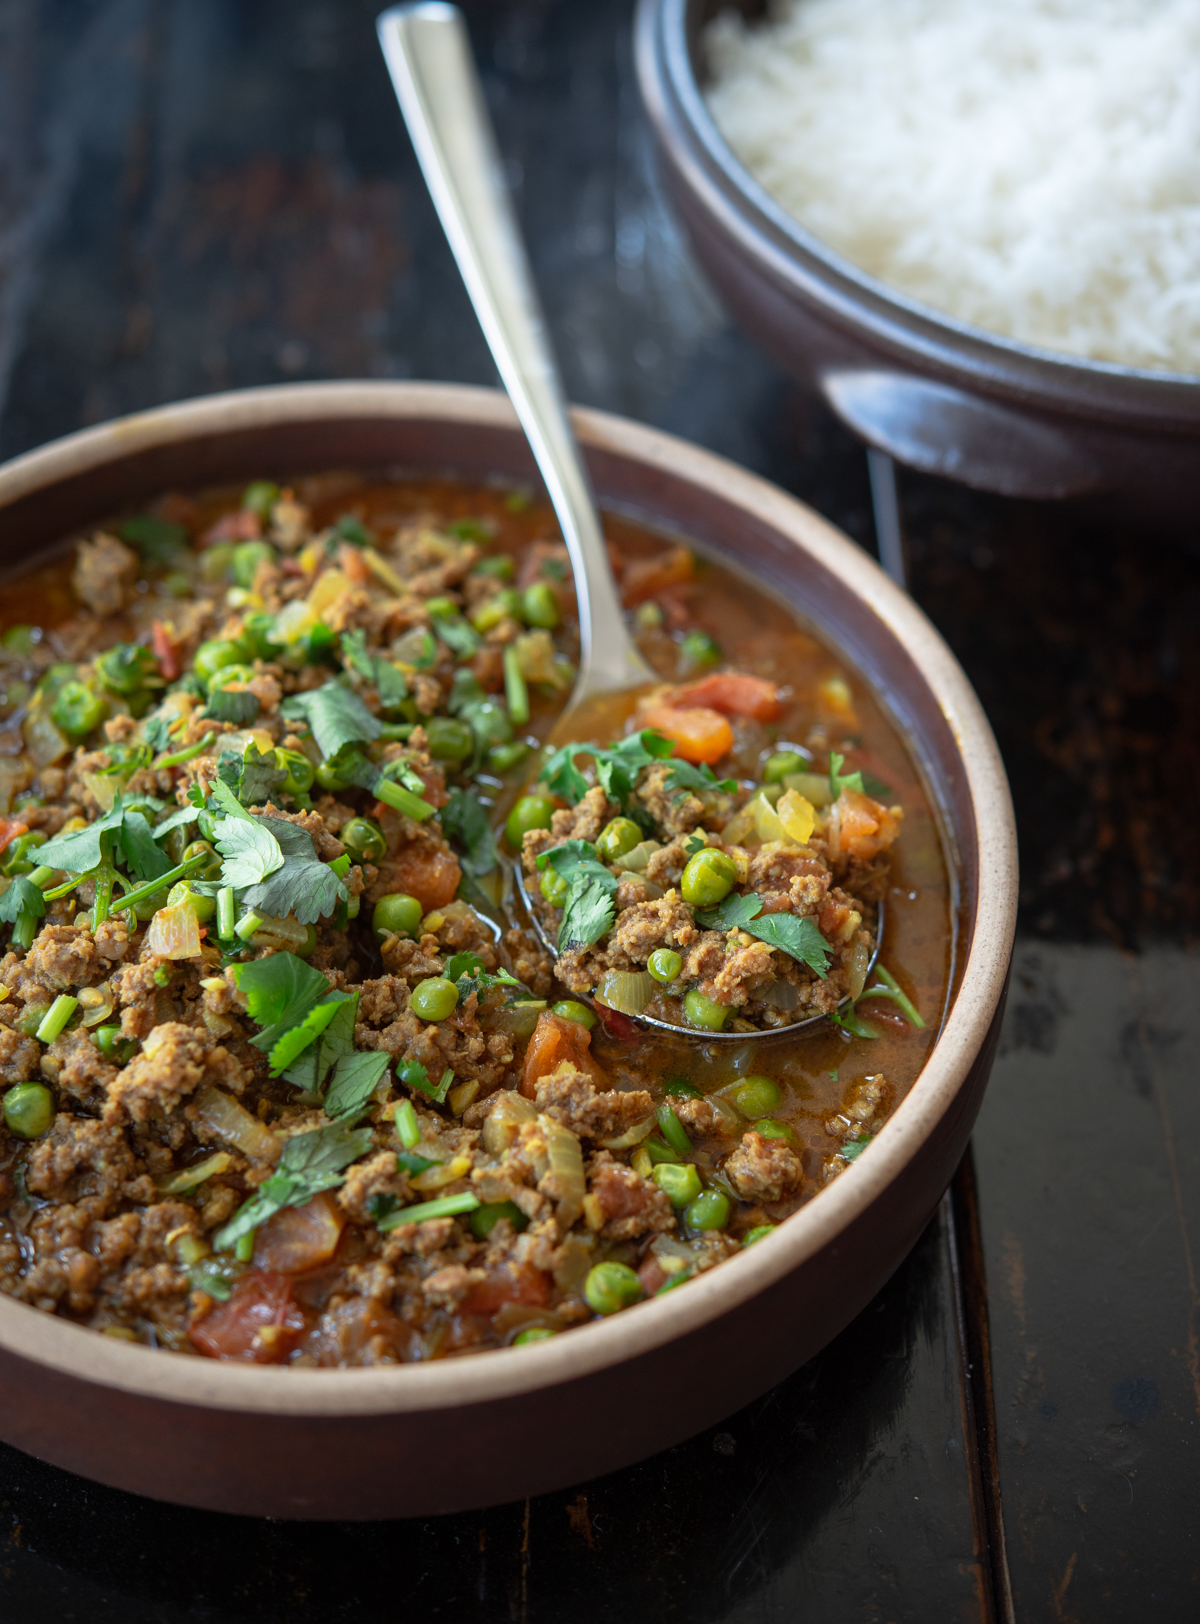 Beef Keema curry is an easy Indian curry made with ground beef and peas